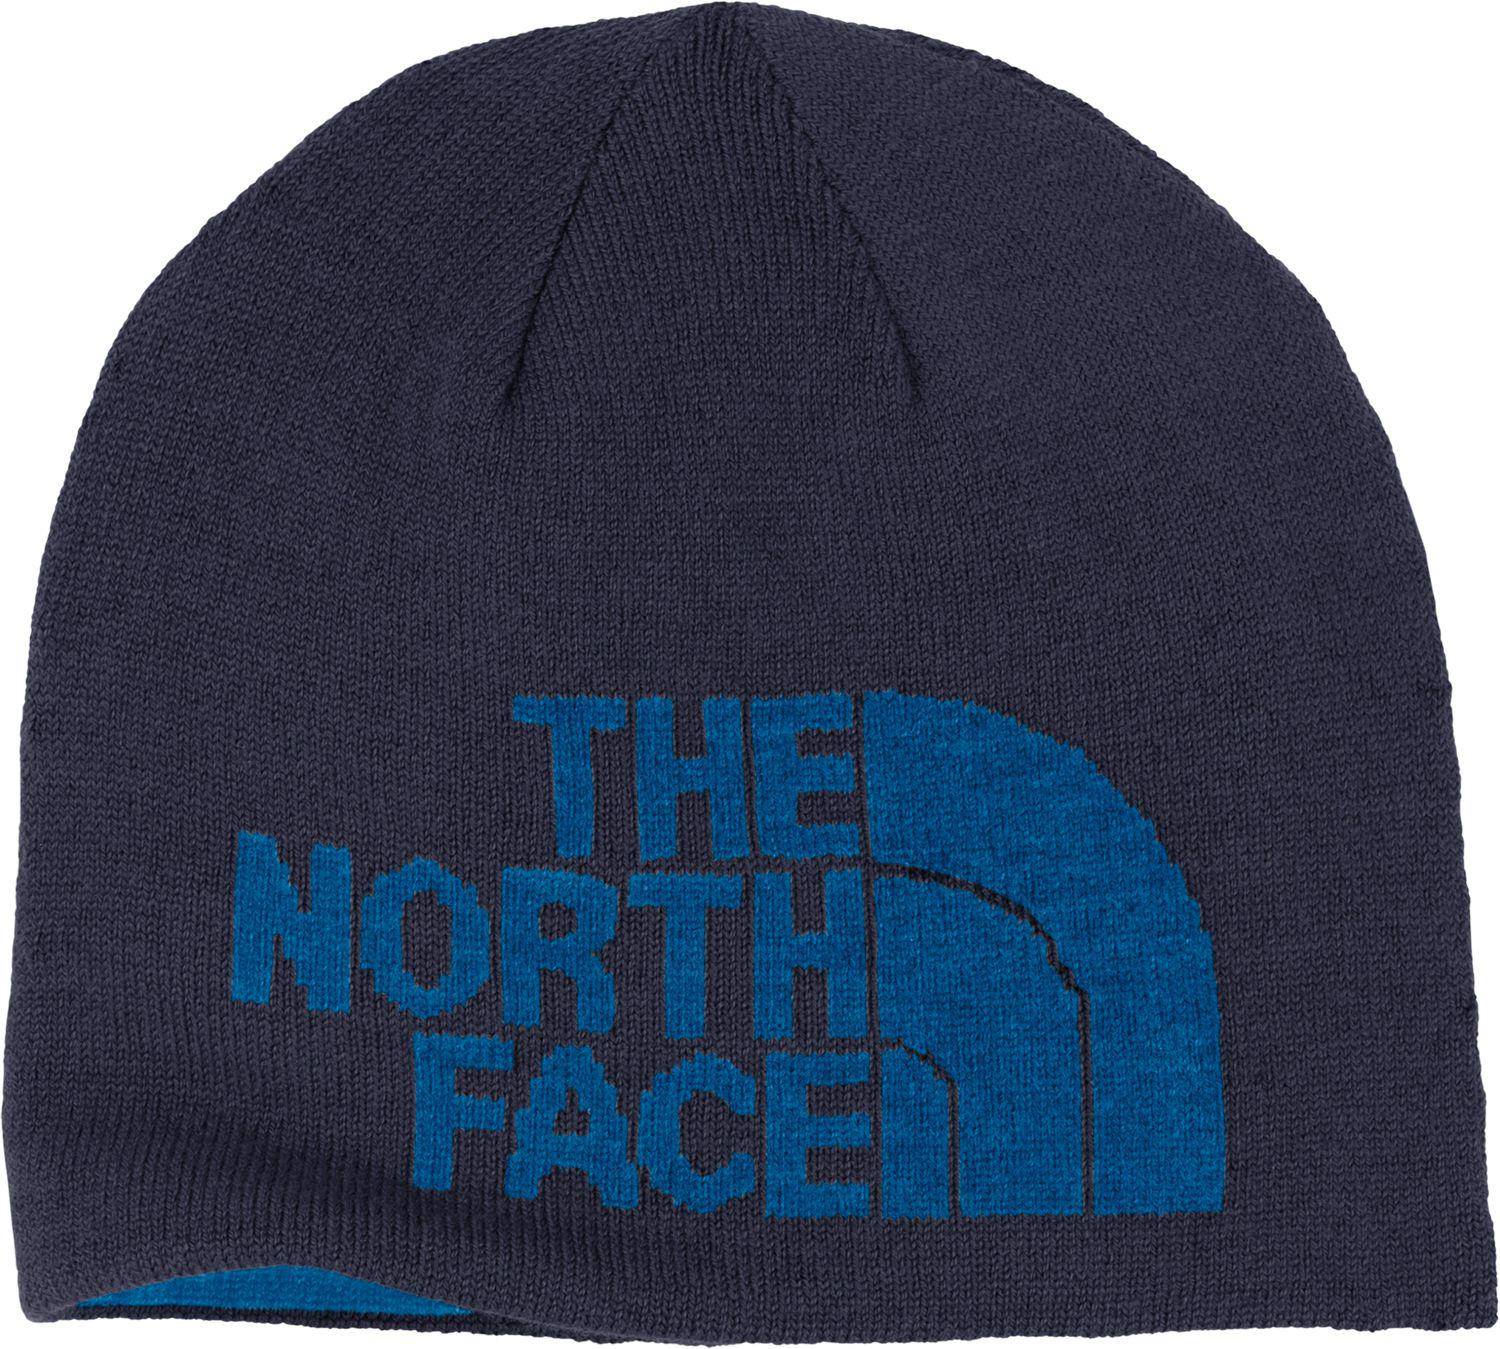 81a88cbc16626 Lyst - The North Face Reversible Highline Beanie in Blue for Men